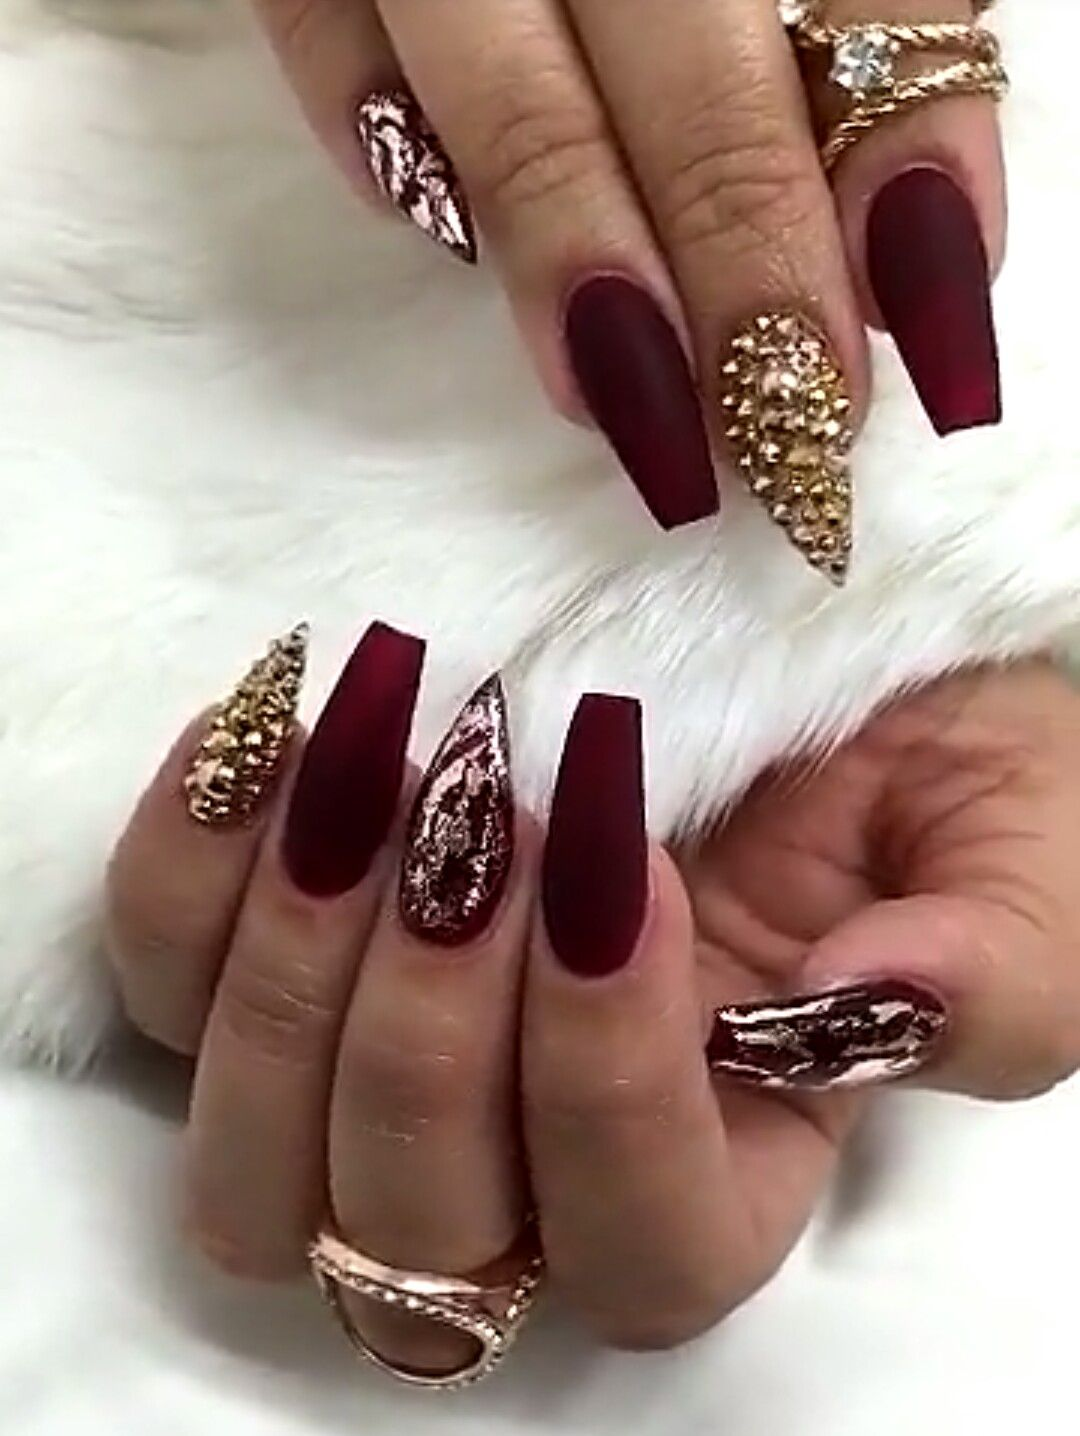 Another Beautiful set by @Customtnails1. Love the matte burgundy ...